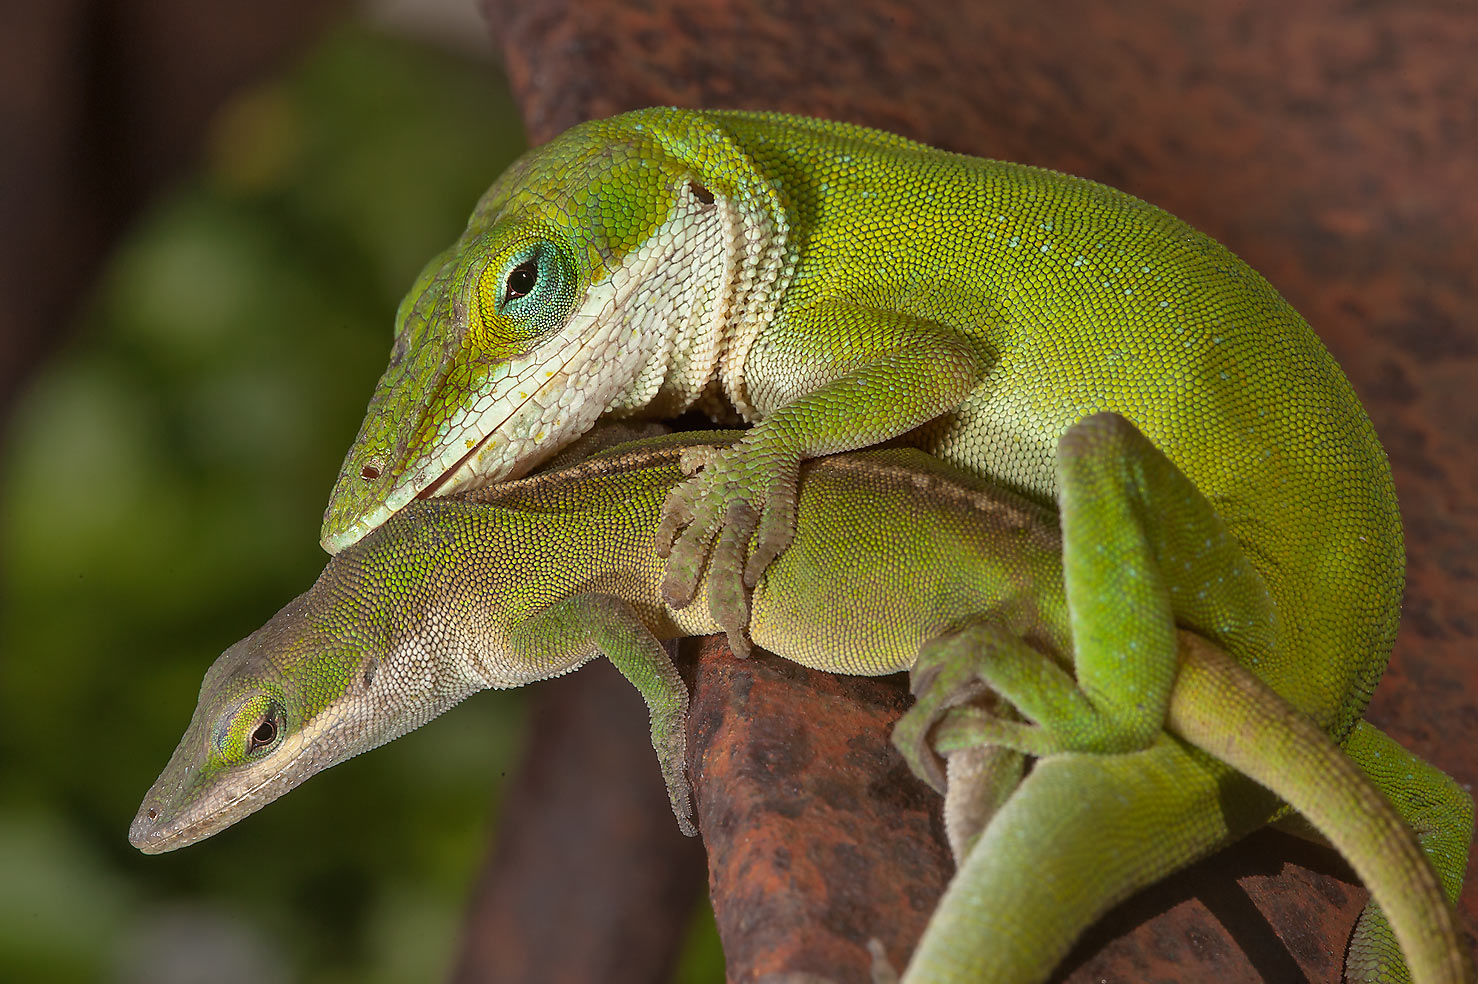 Two green anole lizards in Antique Rose Emporium. Independence, Texas